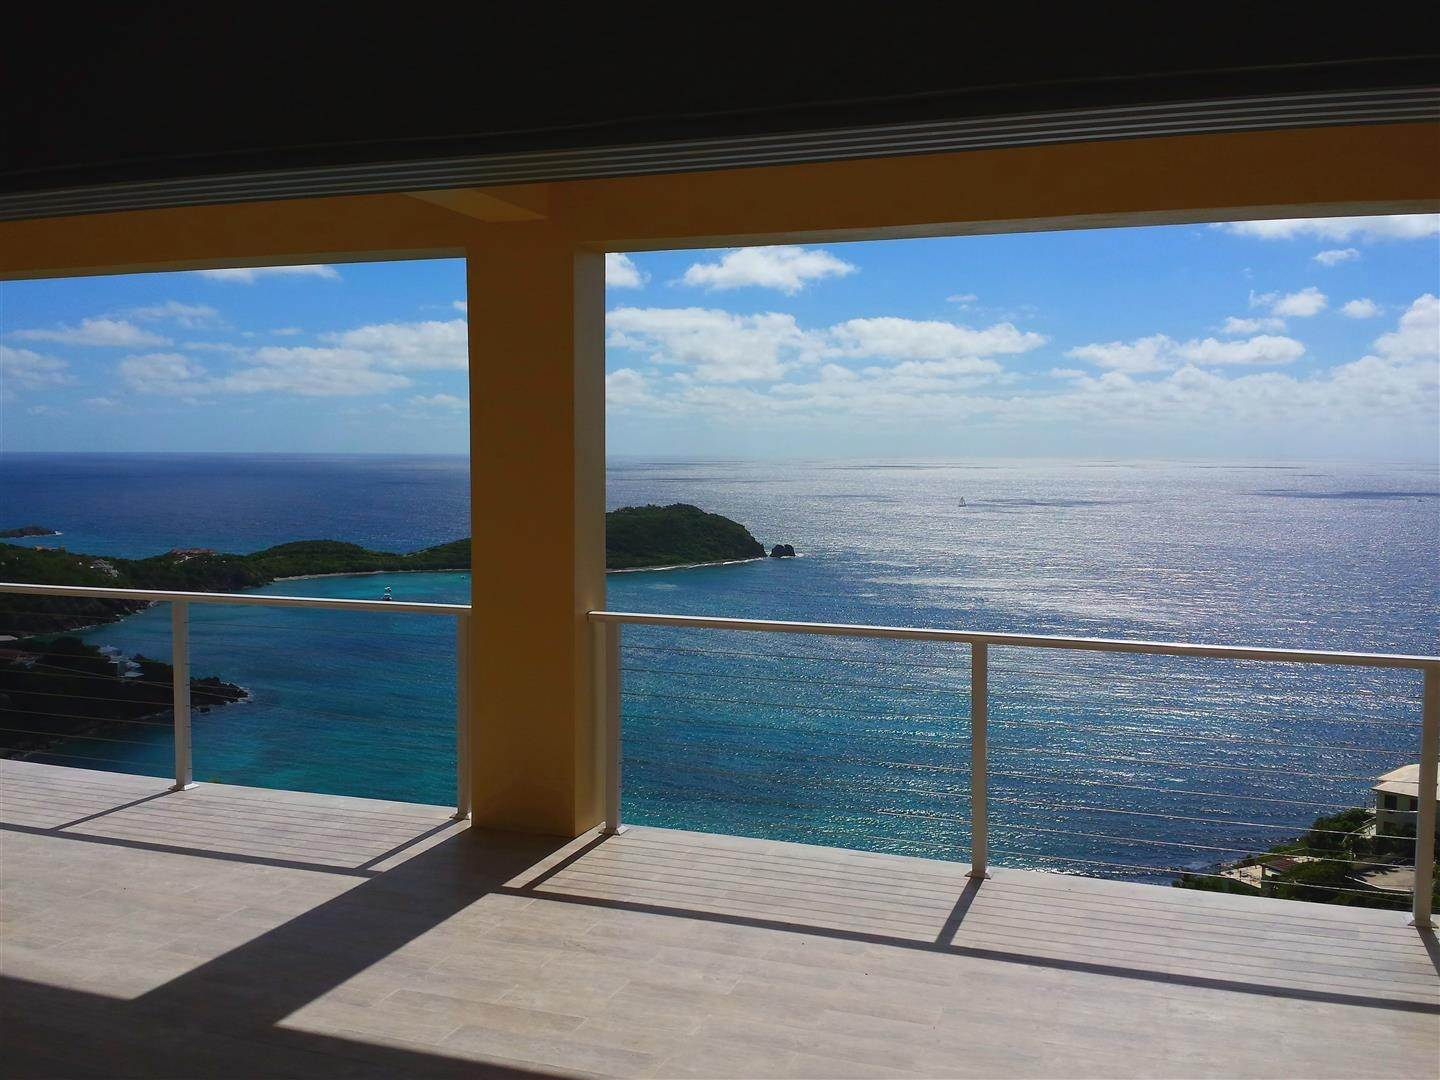 2. Single Family Home for Sale at 15C-10 Rendezvous & Ditleff Cruz Bay St John, Virgin Islands,00830 United States Virgin Islands